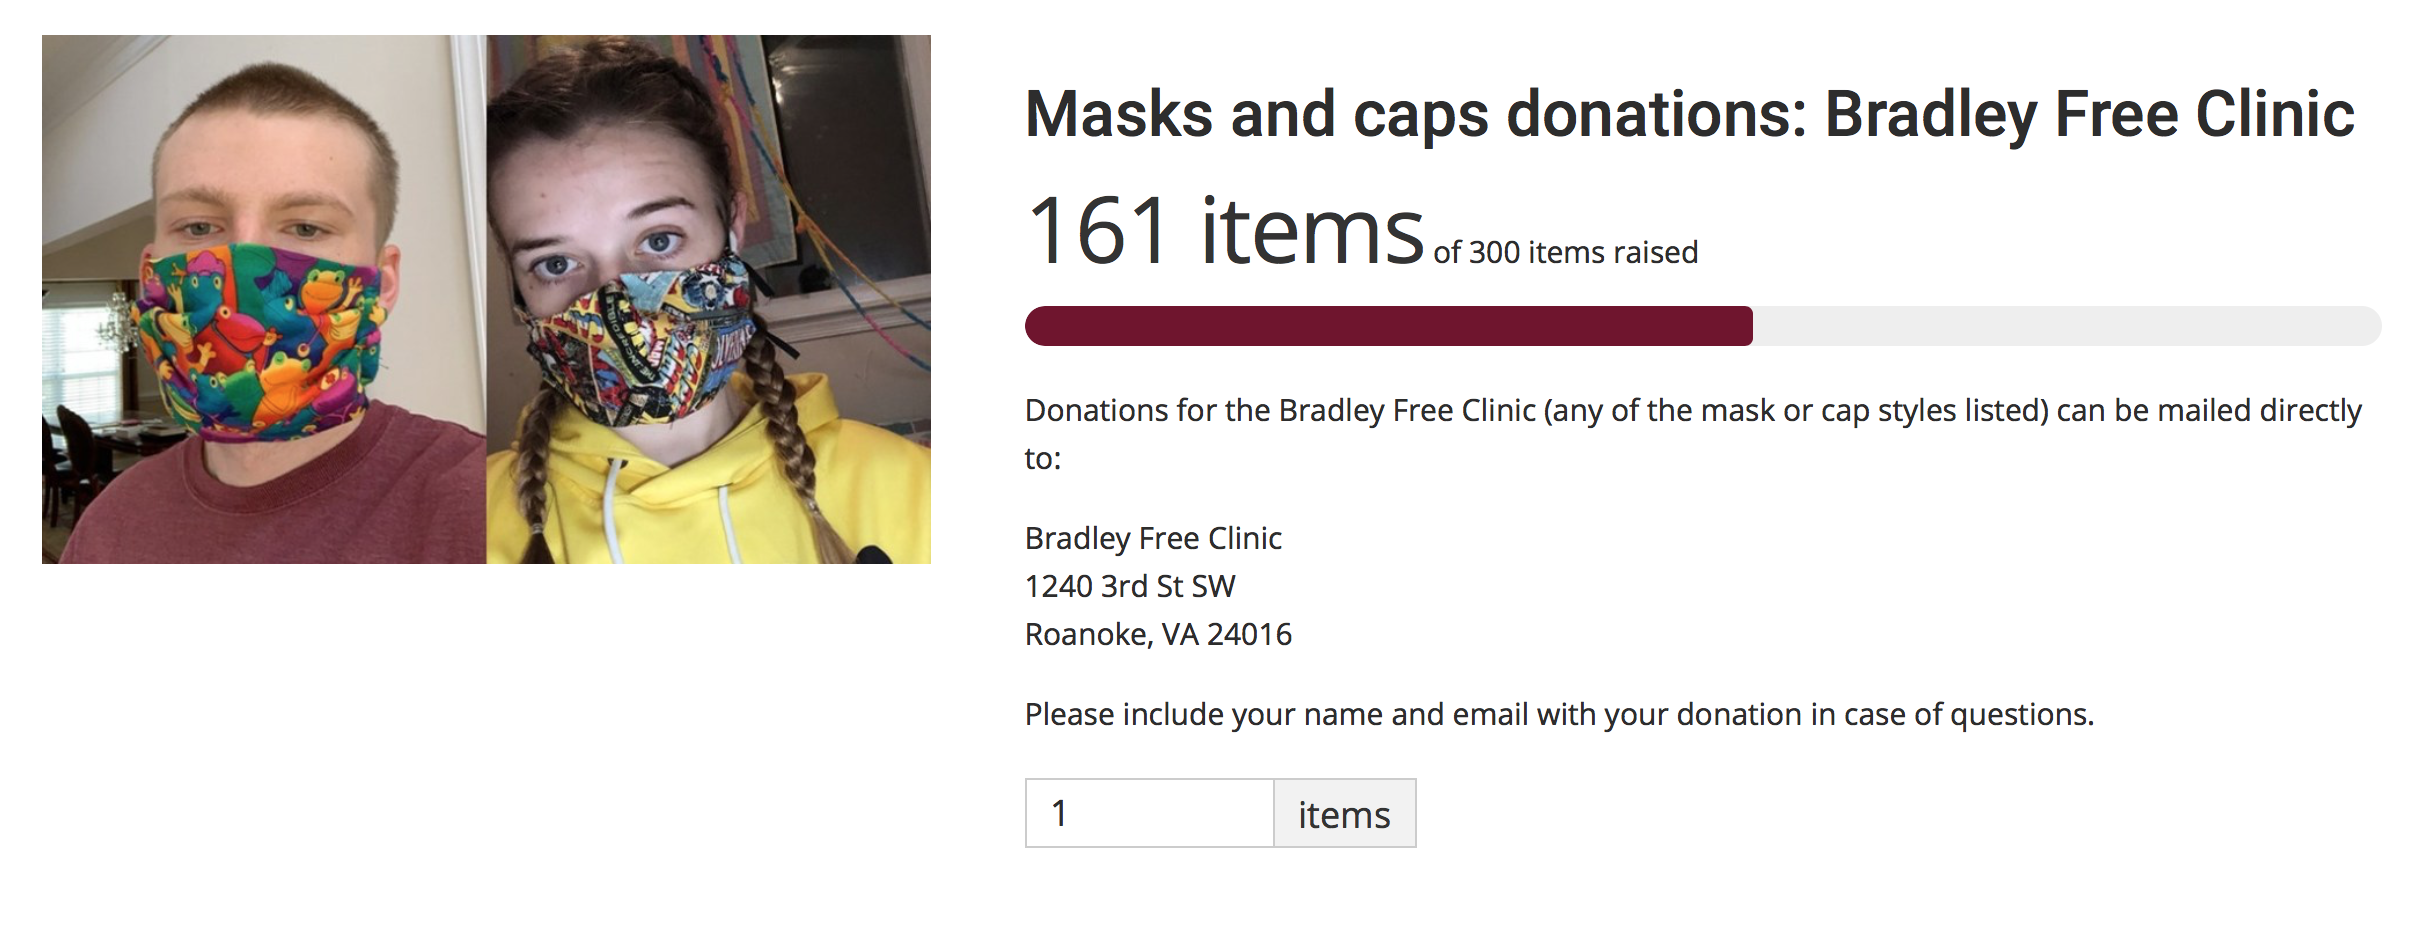 The Maroons Make Masks donation forms asks for items instead of monetary donations.